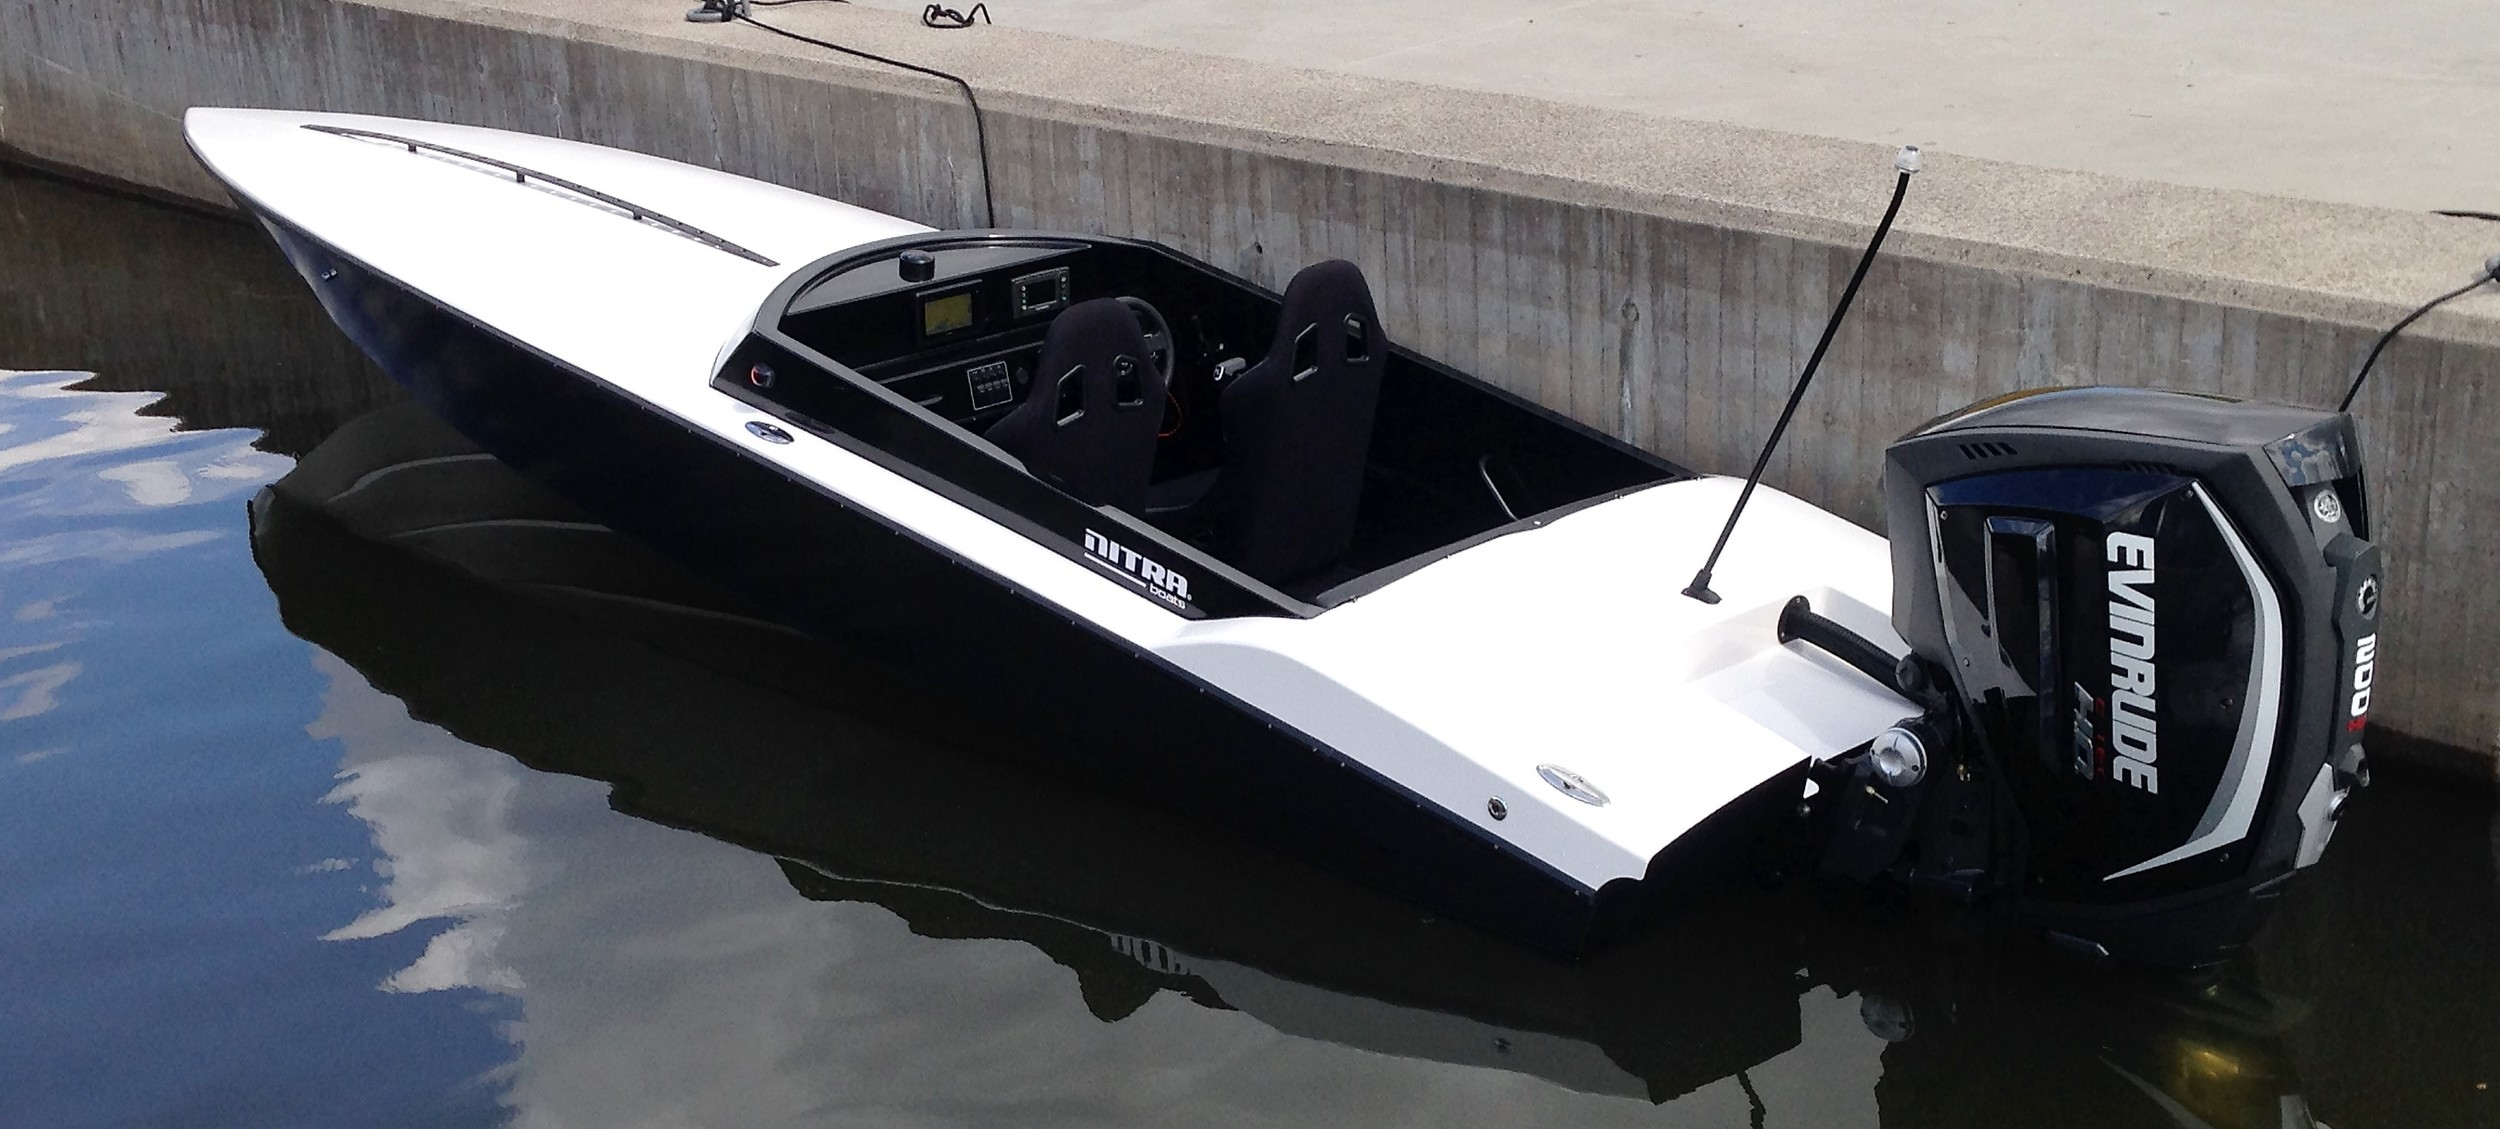 Clean lines and unique curves provide a sophisticated look. Perfect setup here, 75 MPH+ with an Evinrude 200 HO.